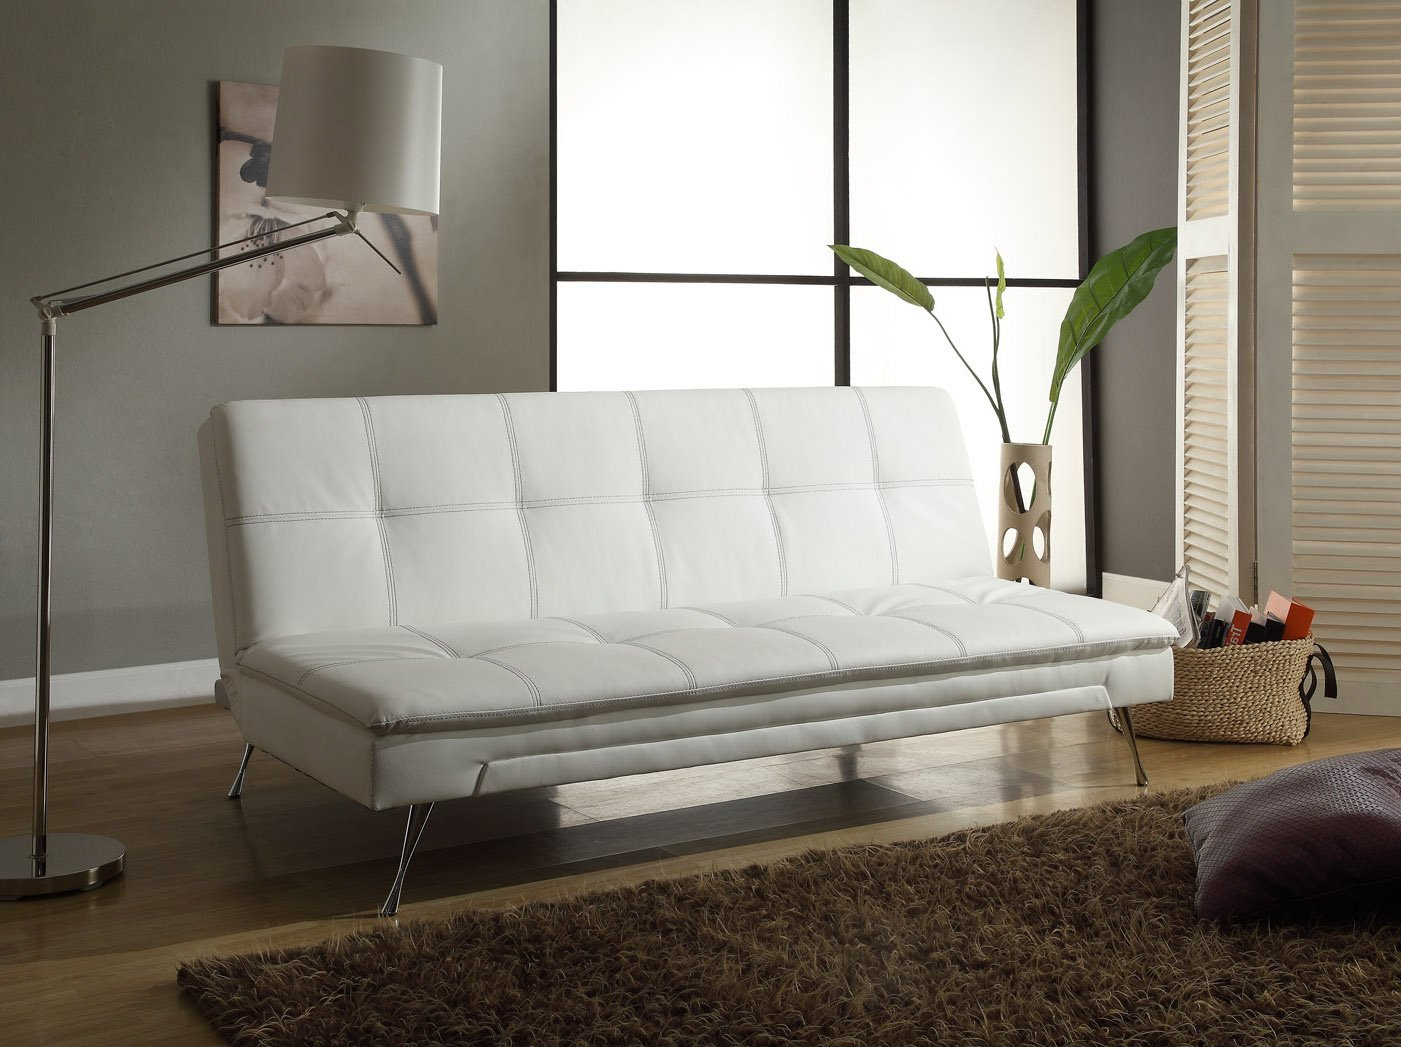 Buy cheap sofa cheap sectional sofa for Cheap nice couches for sale